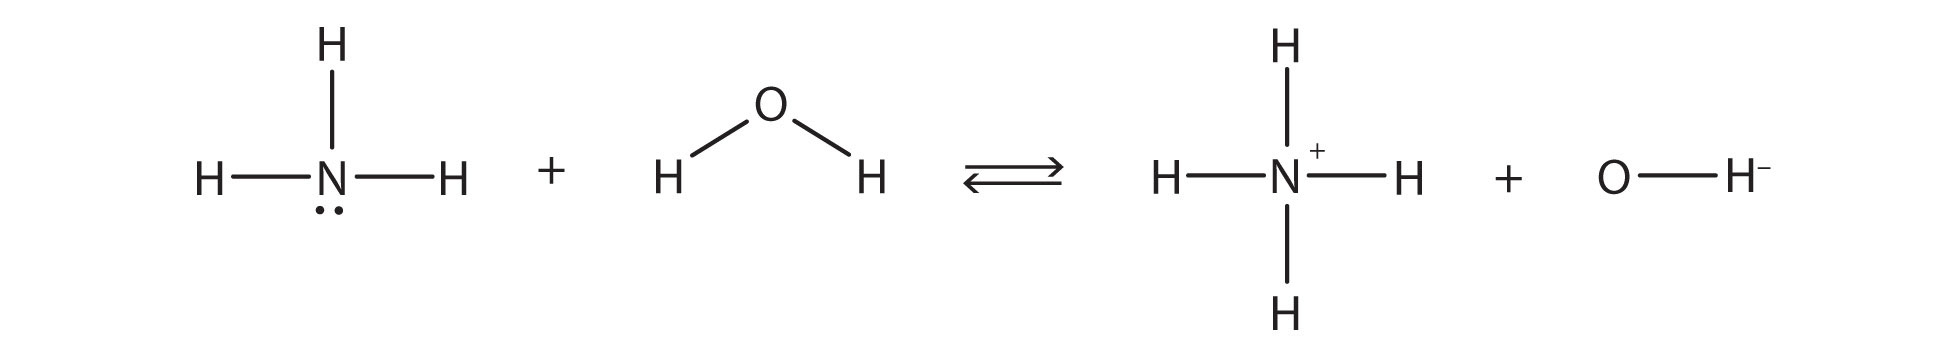 This image is a -The reaction between ammonia and water is in equilibrium as the reverse reaction occurs as well.